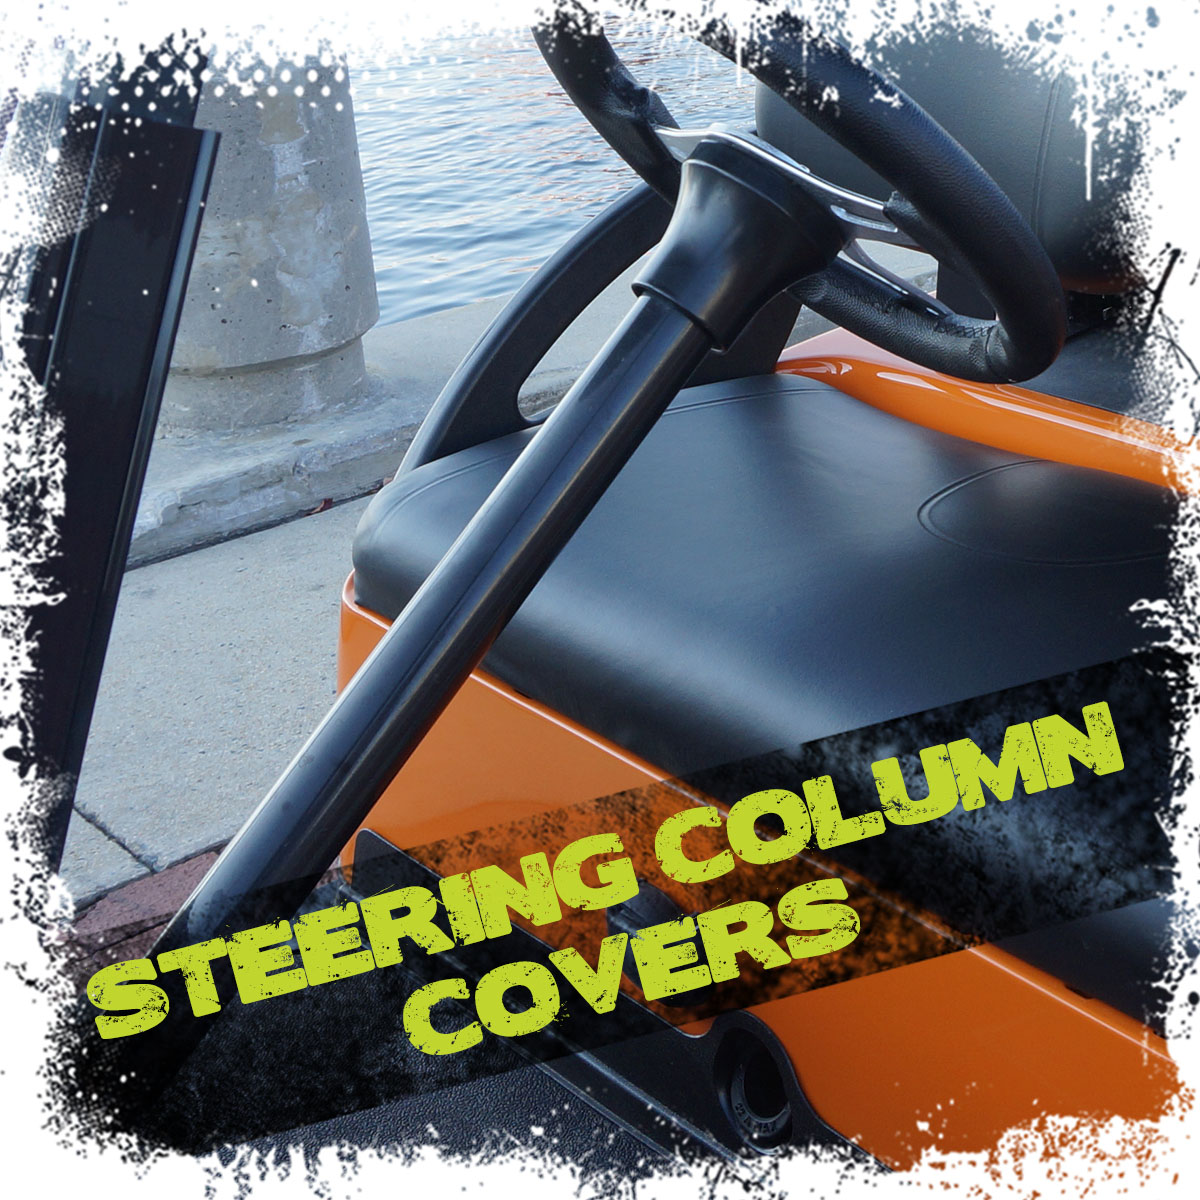 Steering Column Covers